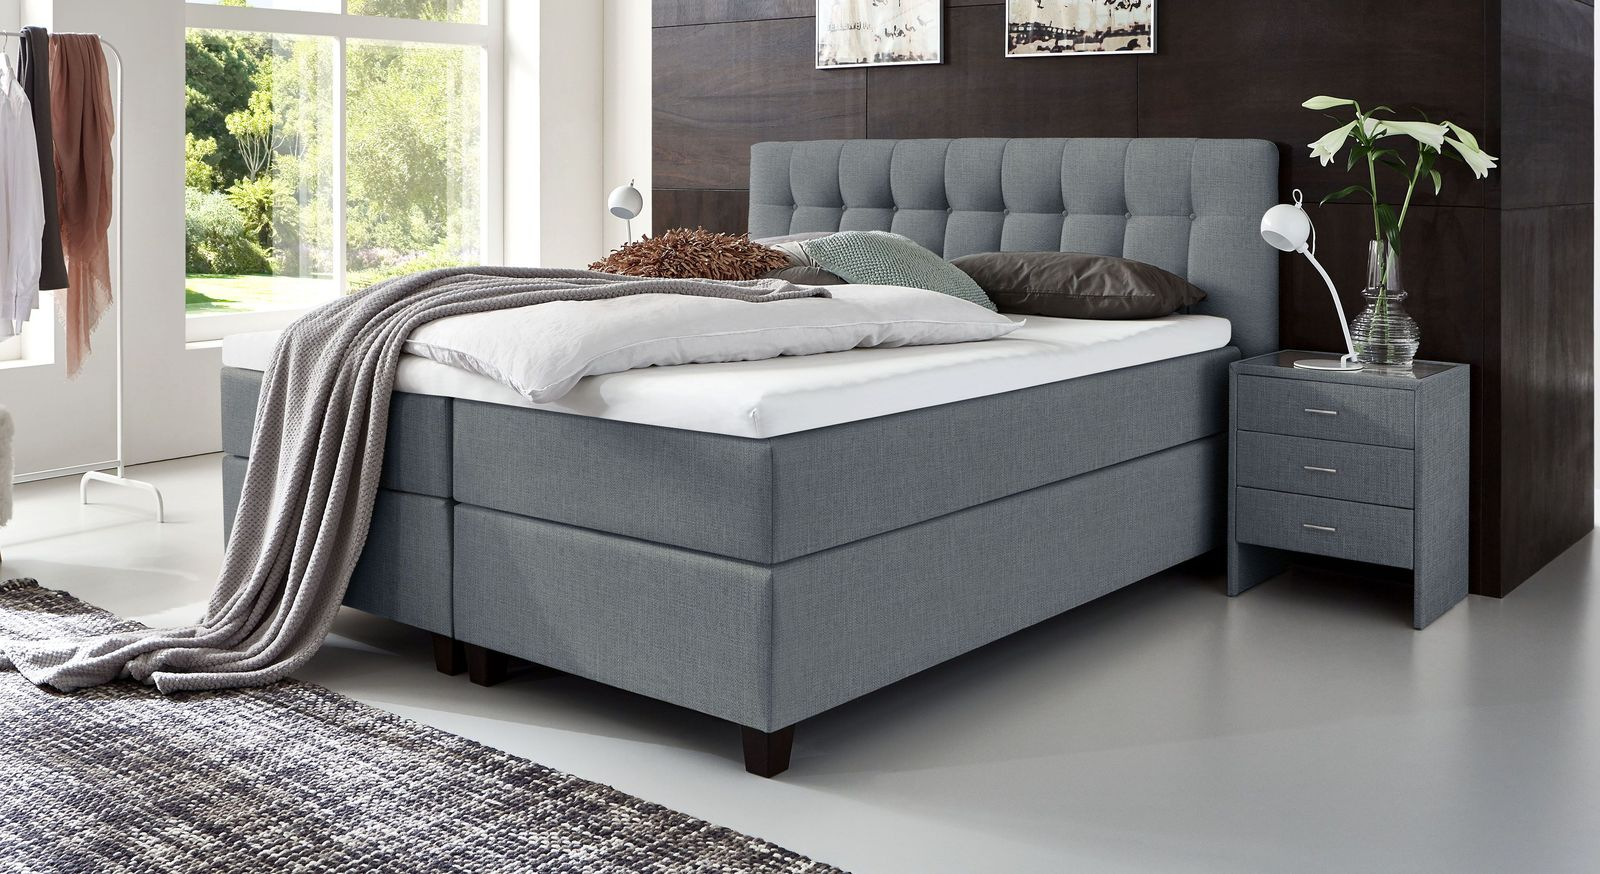 66 cm hohes Boxspringbett Luciano aus meliertem Webstoff in Blaugrau